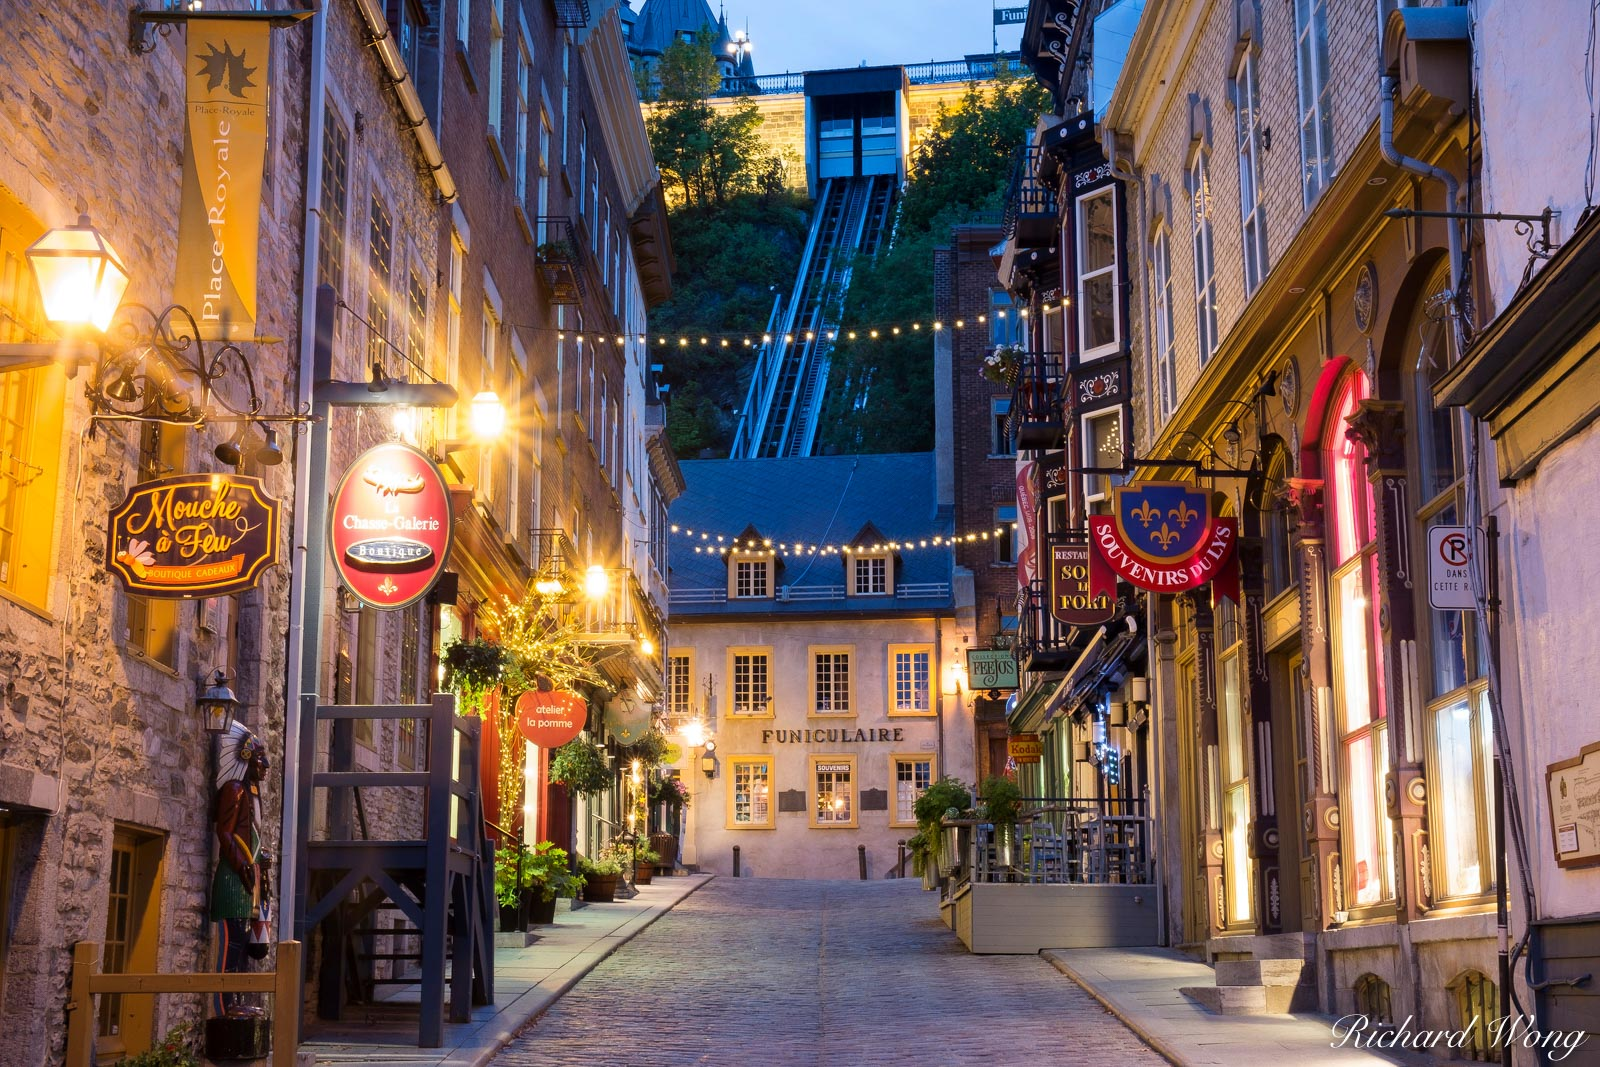 Rue Sous le Fort and Le Funiculaire at Dawn, Lower Town Quebec City (Basse-Ville), QC, Canada